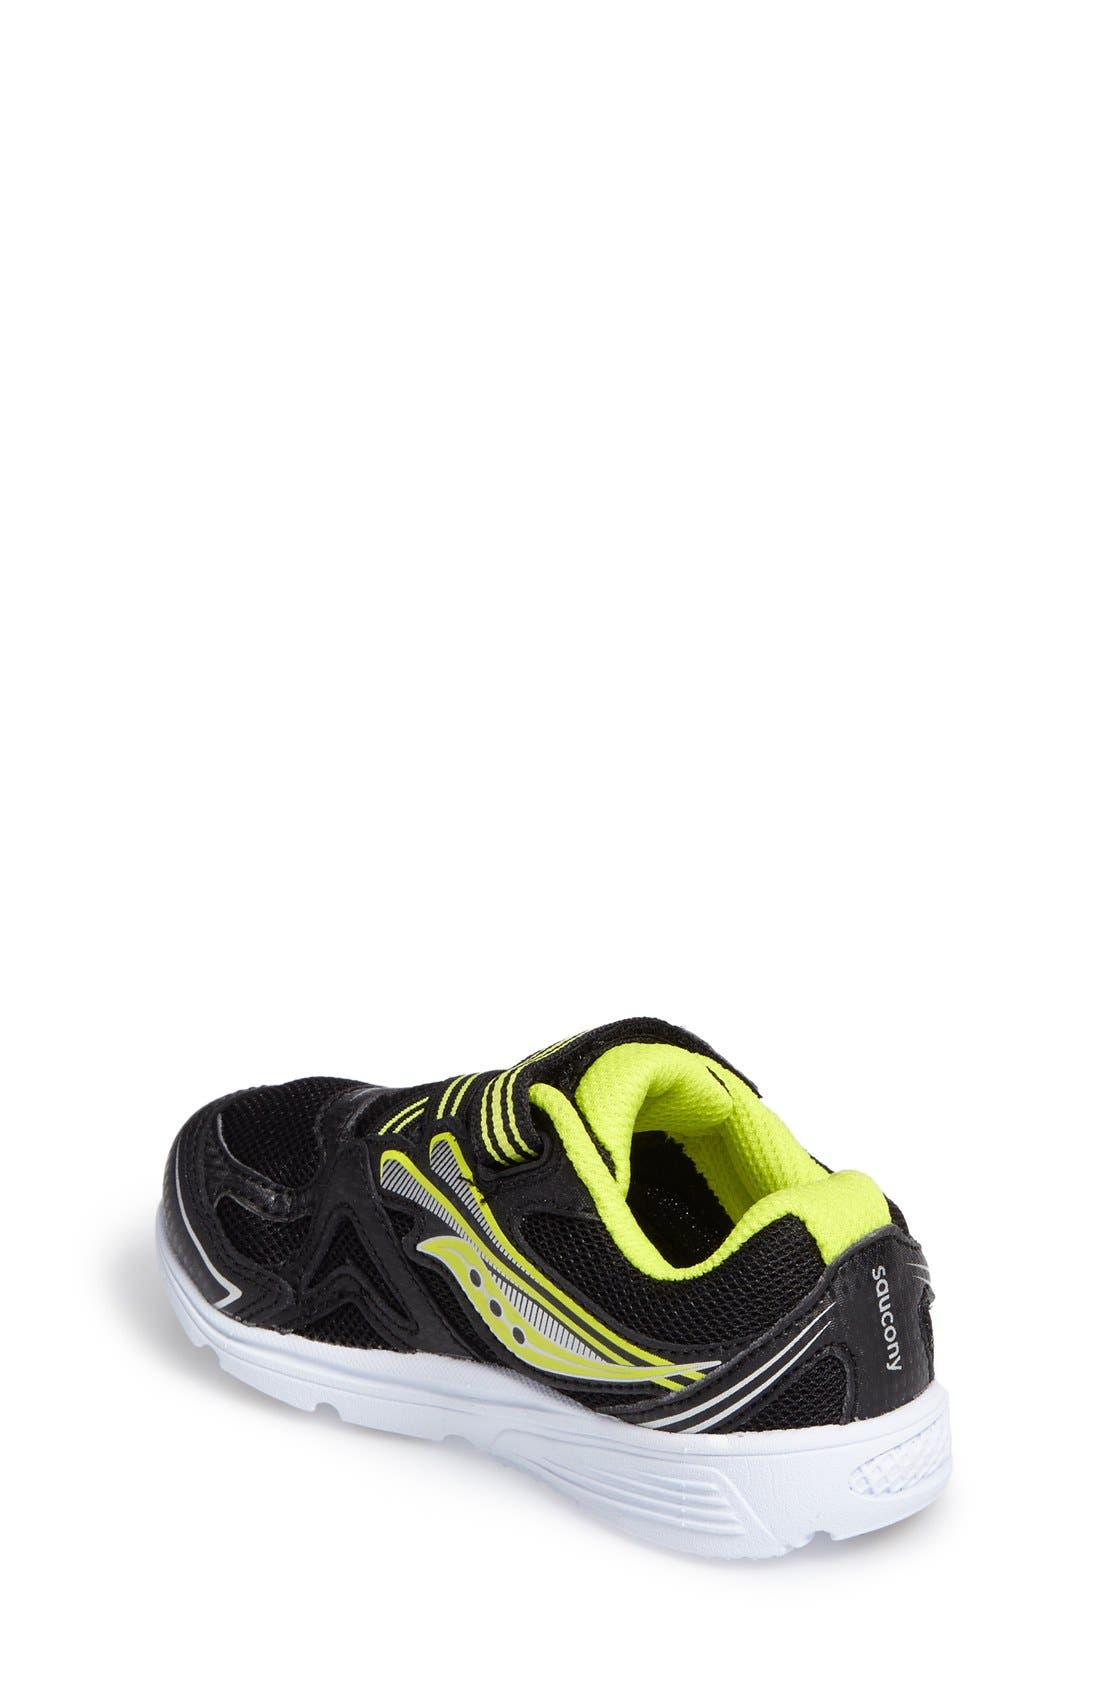 Baby Ride Sneaker,                             Alternate thumbnail 11, color,